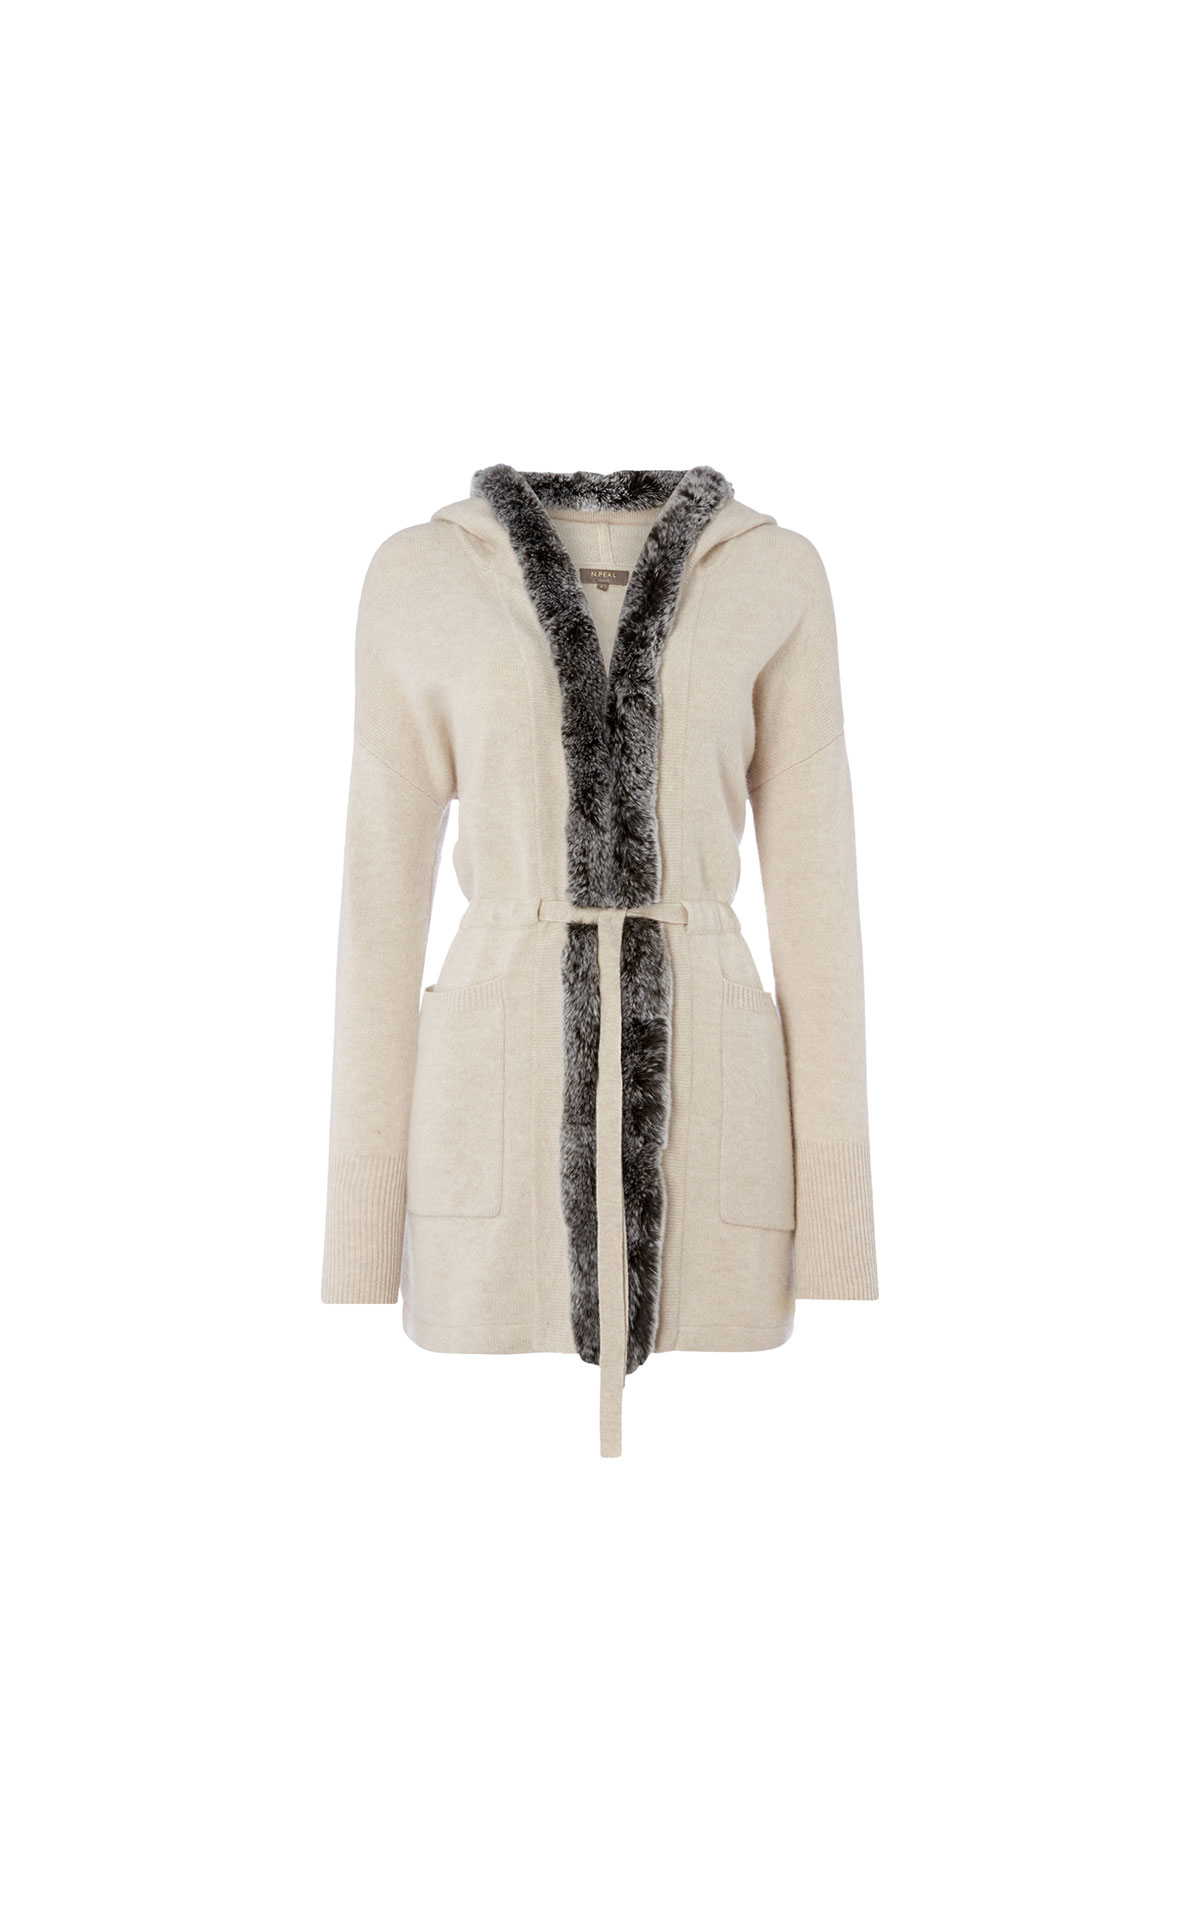 N.Peal Fur Trim Hooded Cardigan from Bicester Village